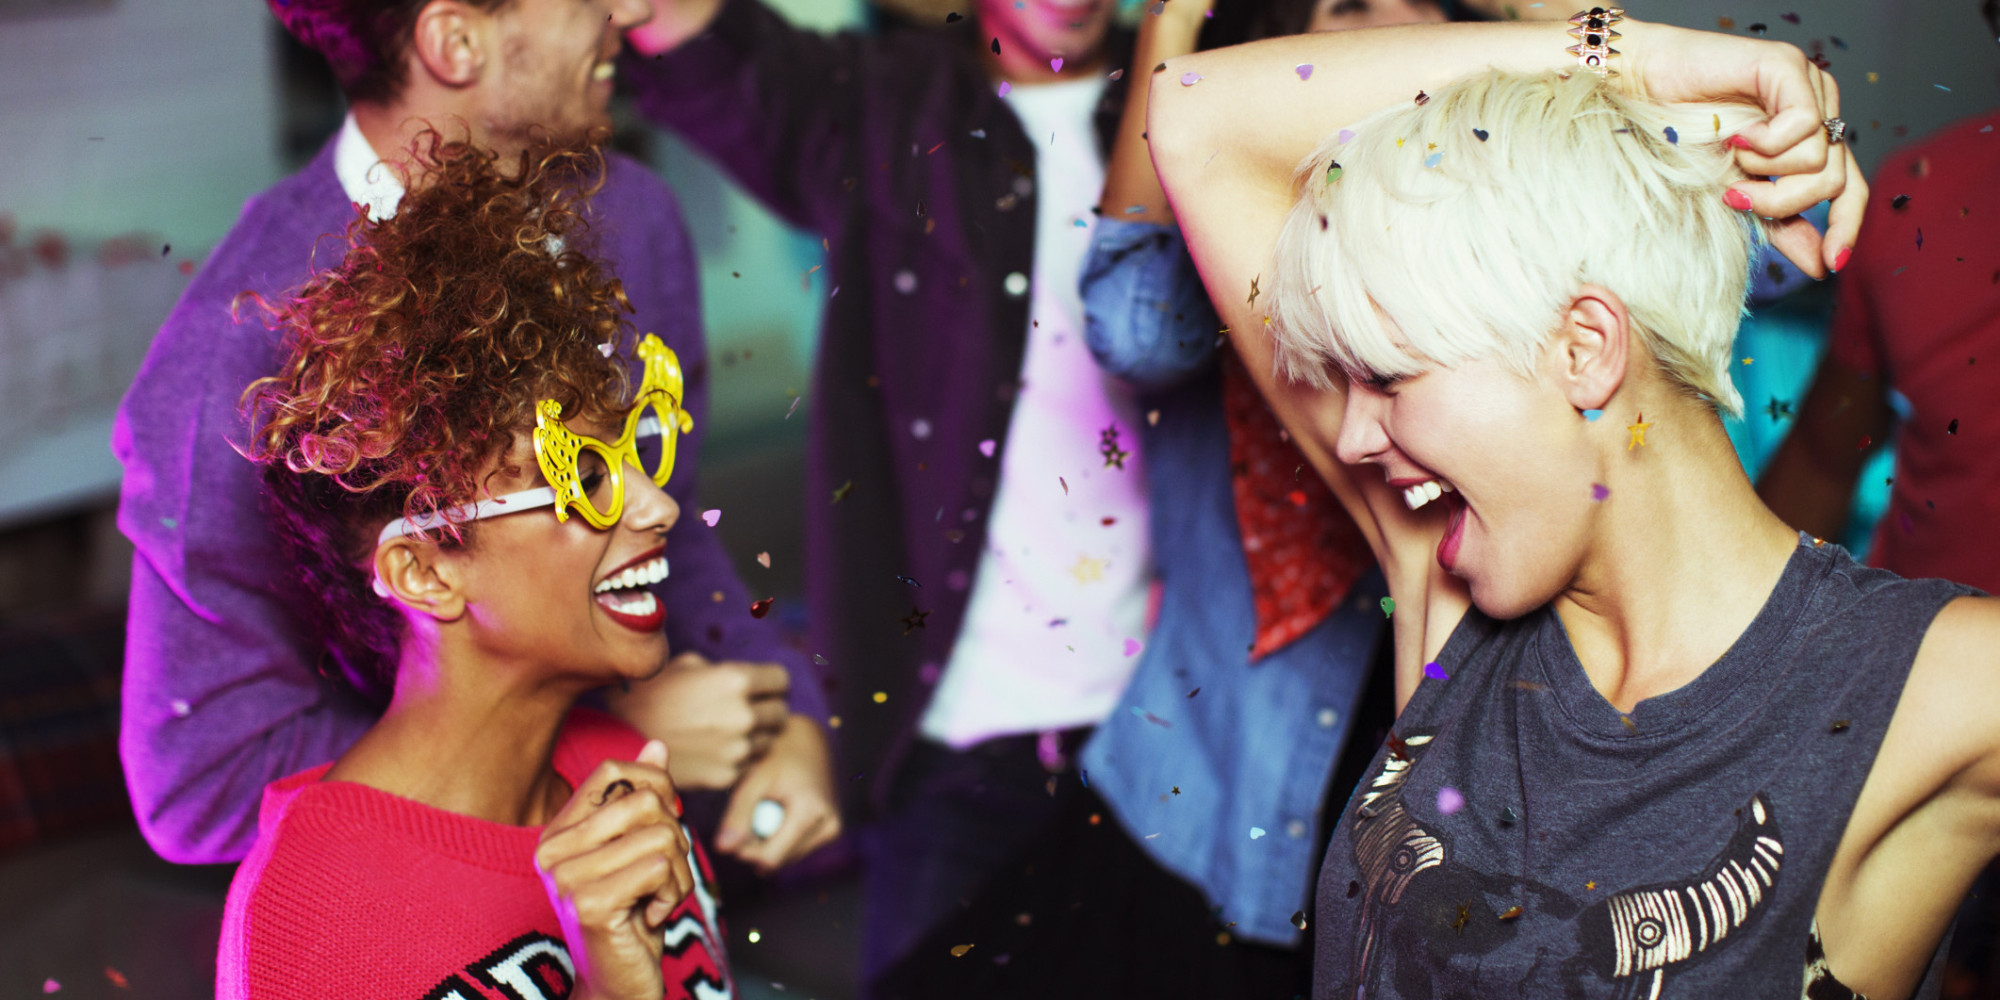 14 DJ Approved Dance Songs That Never Fail To Get People On Their Feet